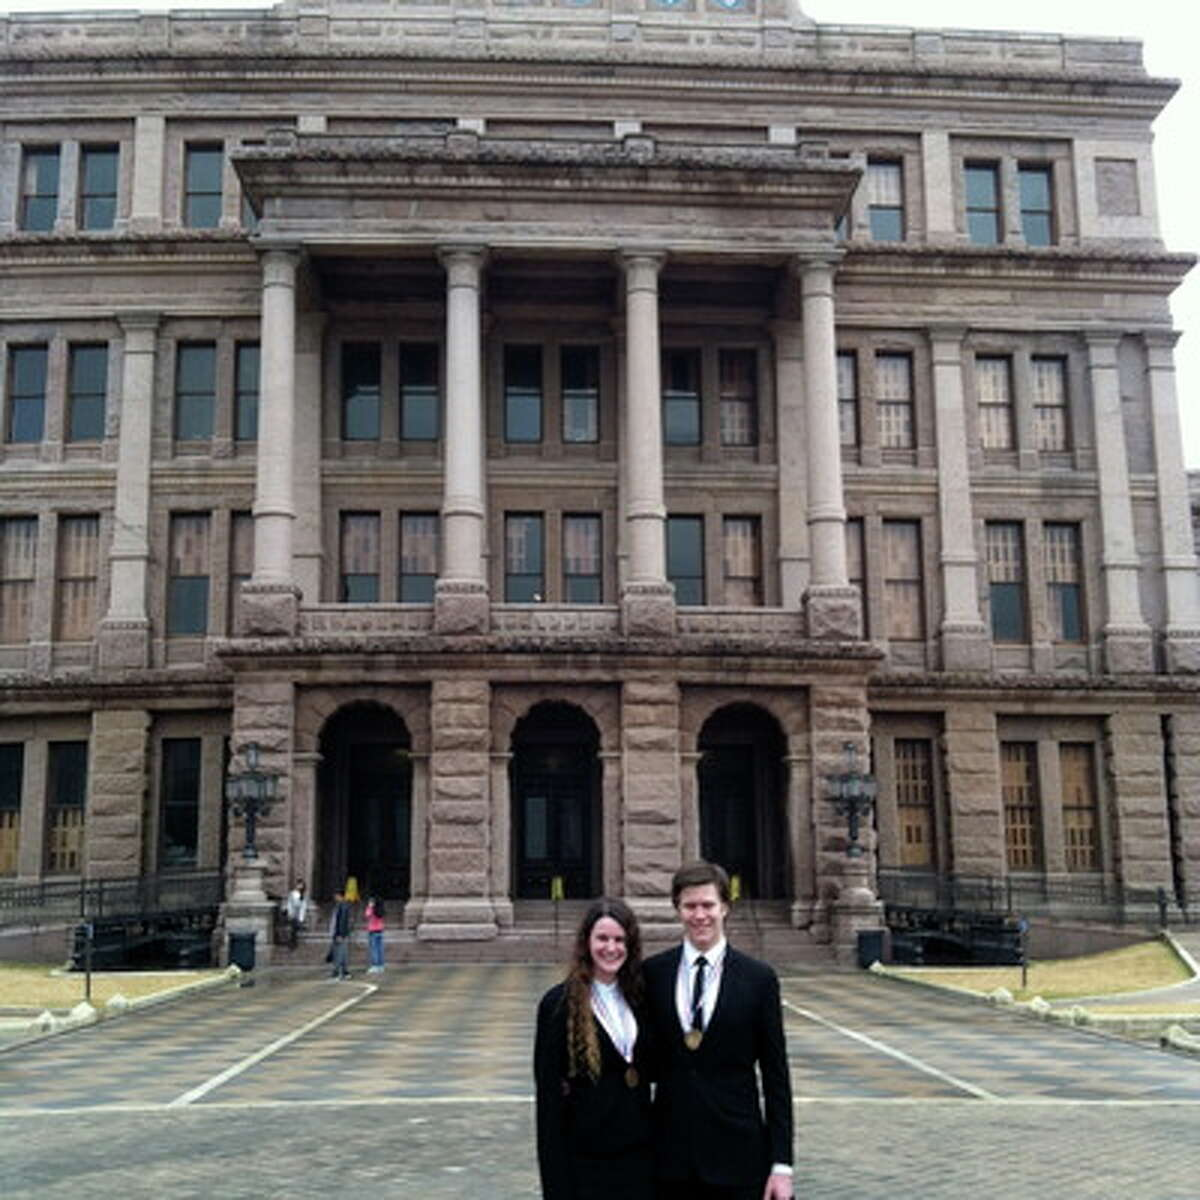 Daira Brayley and Kevin Hodge visit Austin for the University Interscholastic League State 4A Debate Championship.